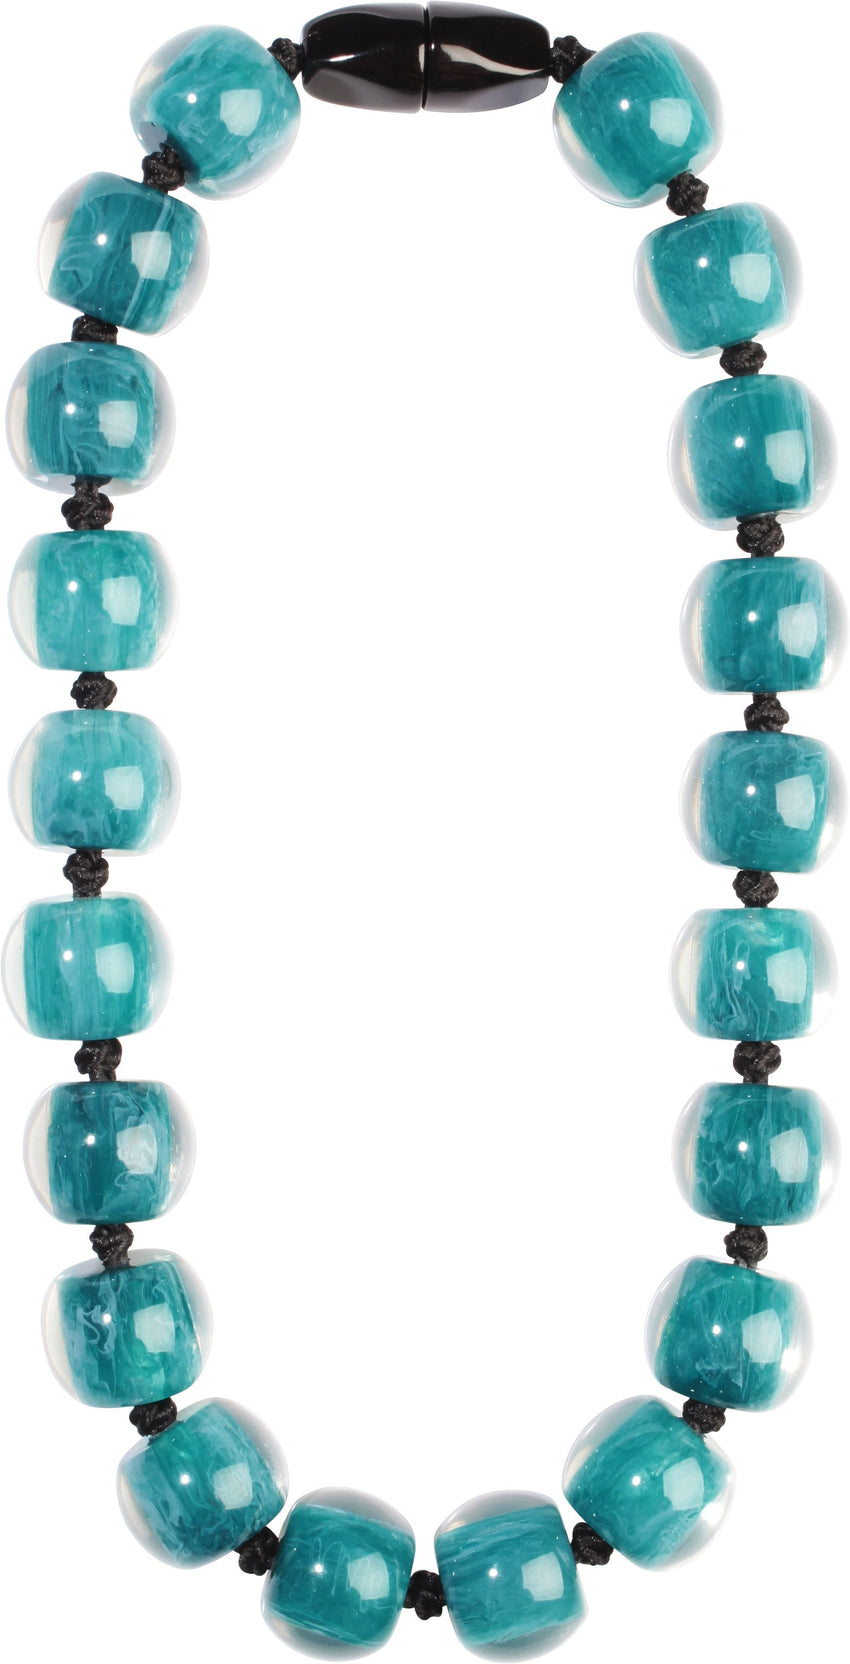 40101179197Q20 Colourful Beads Blue 9197 Q20